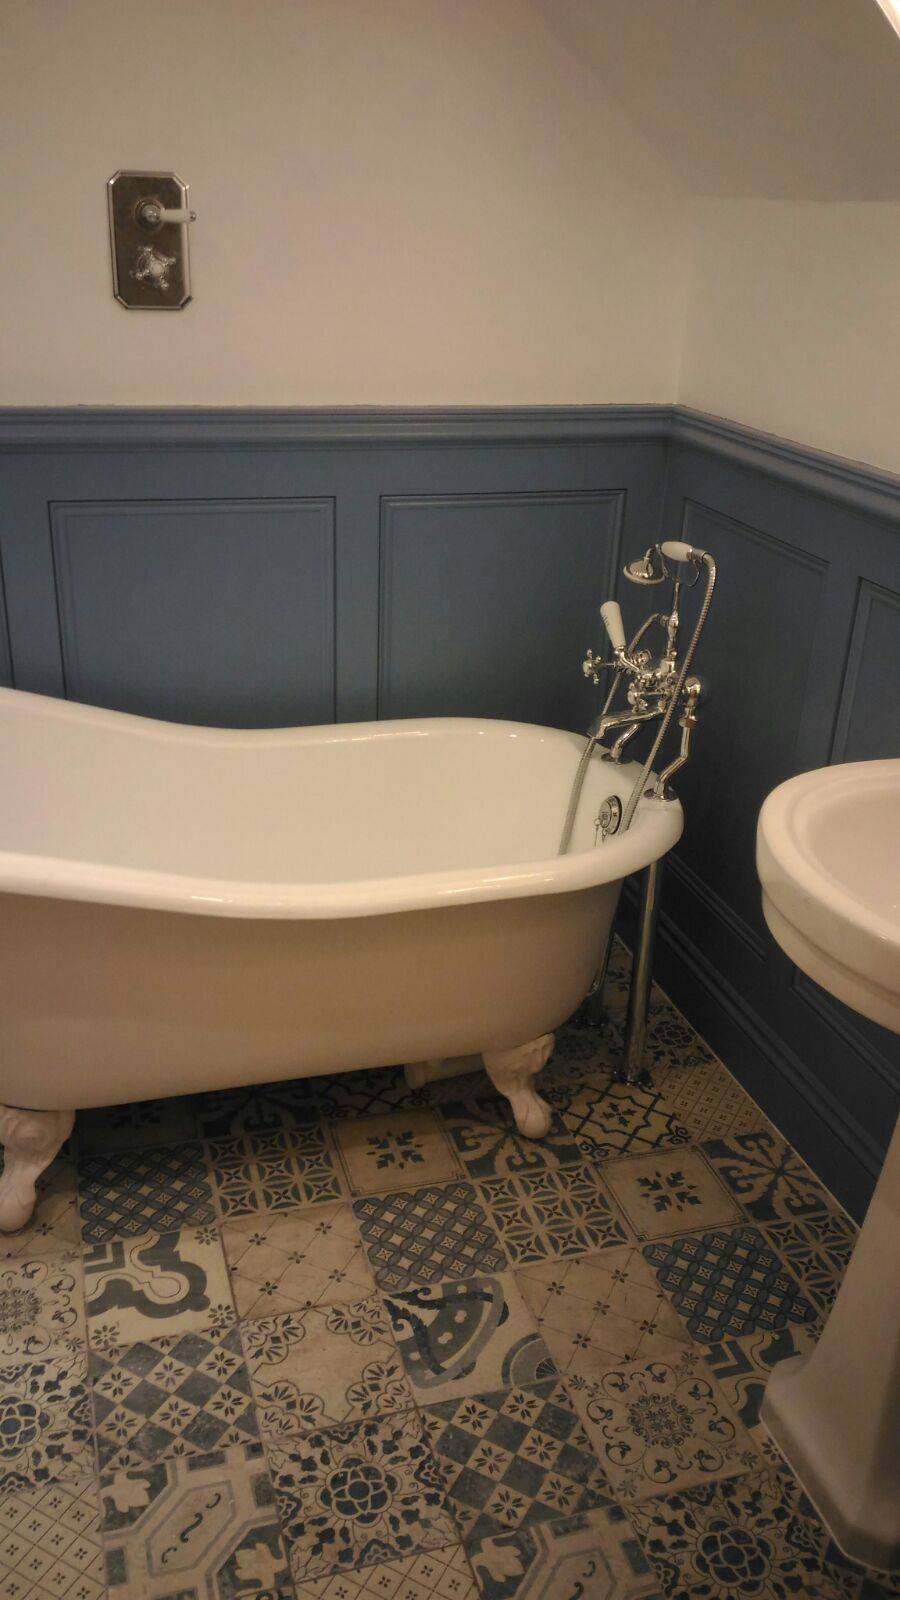 Freestanding rolltop bath